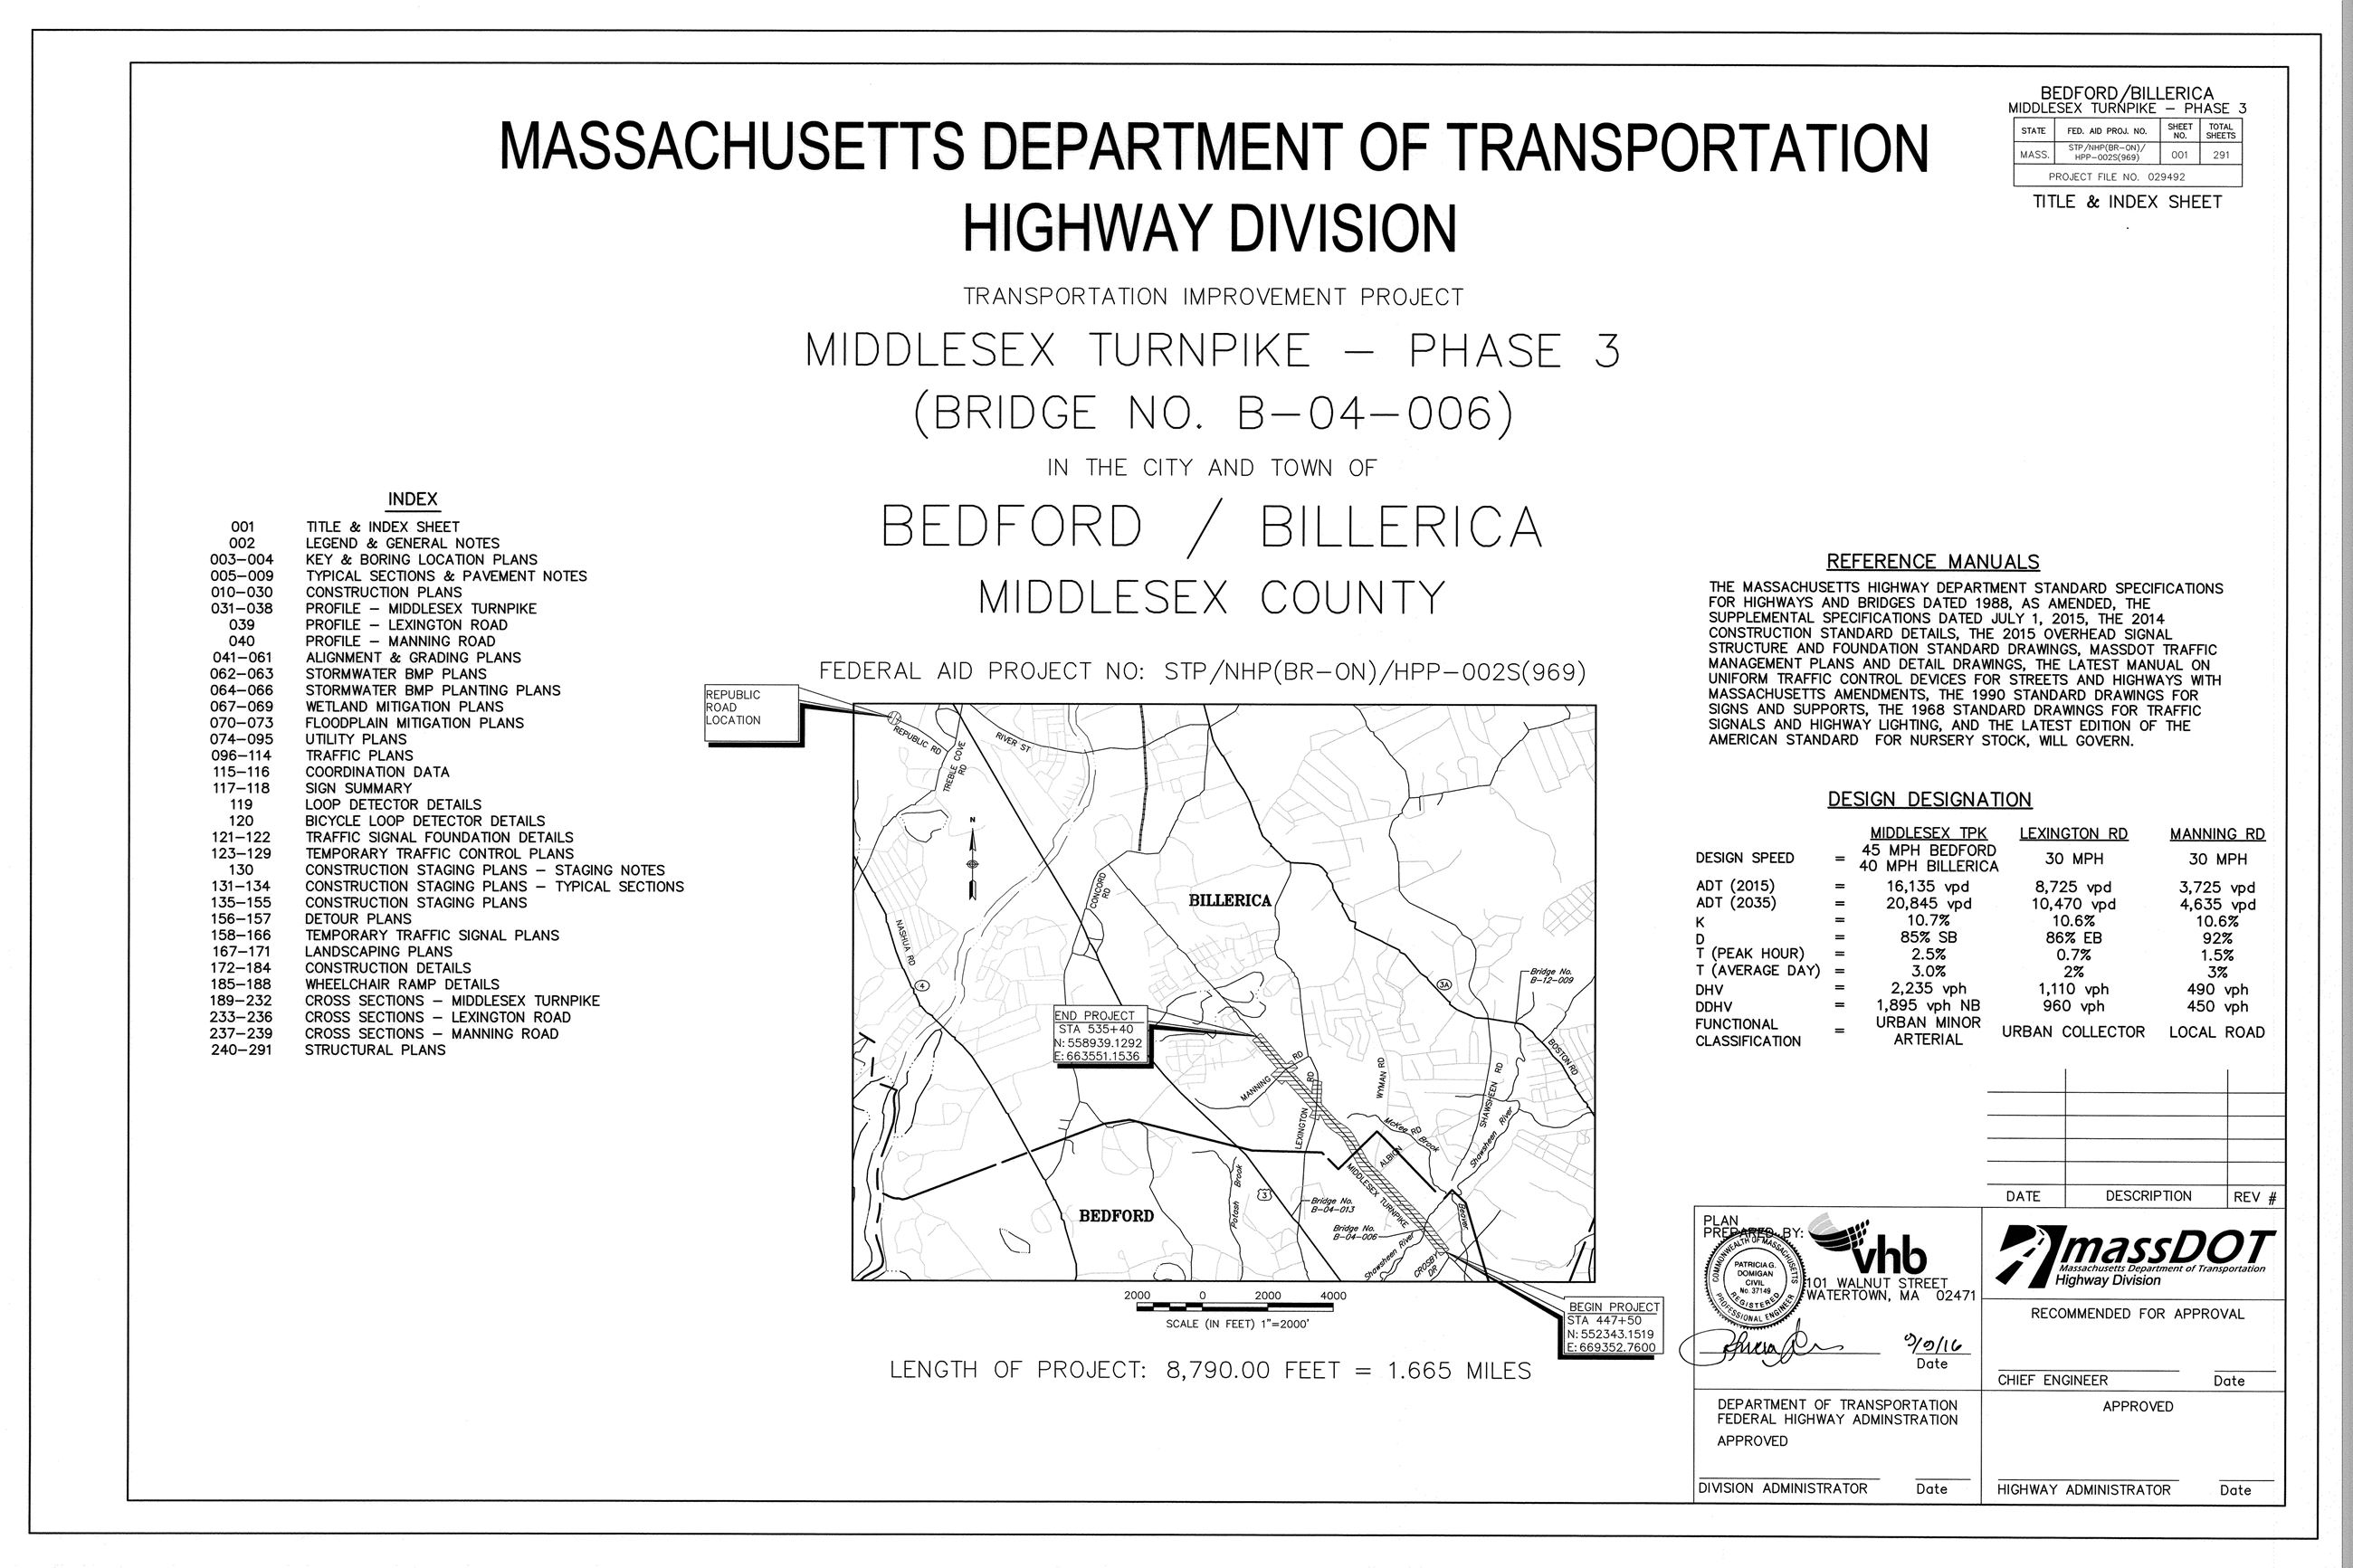 Middlesex Turnpike Construction Plans